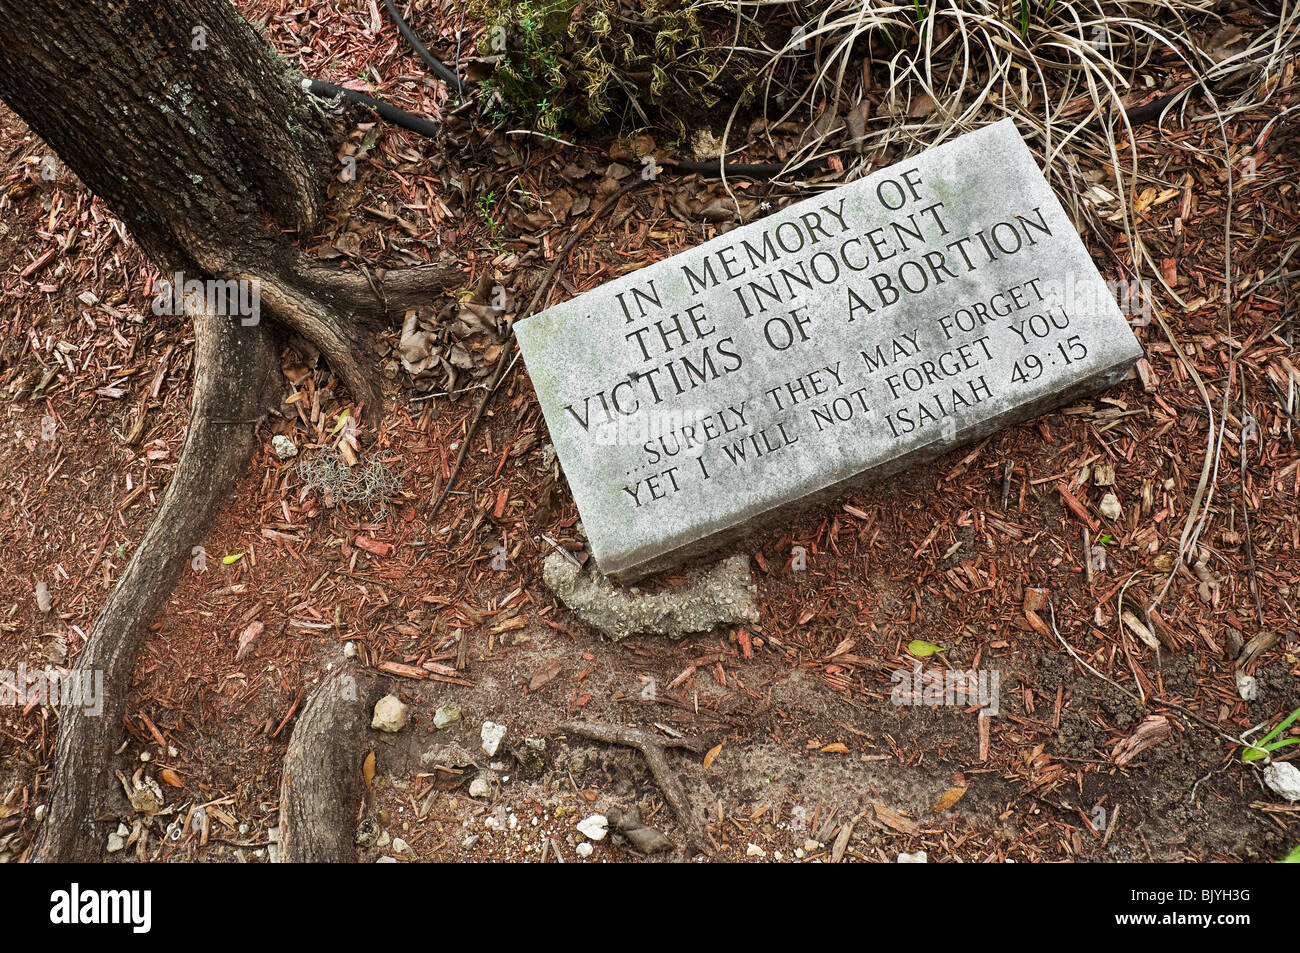 abortion grave marker in garden of church - Stock Image